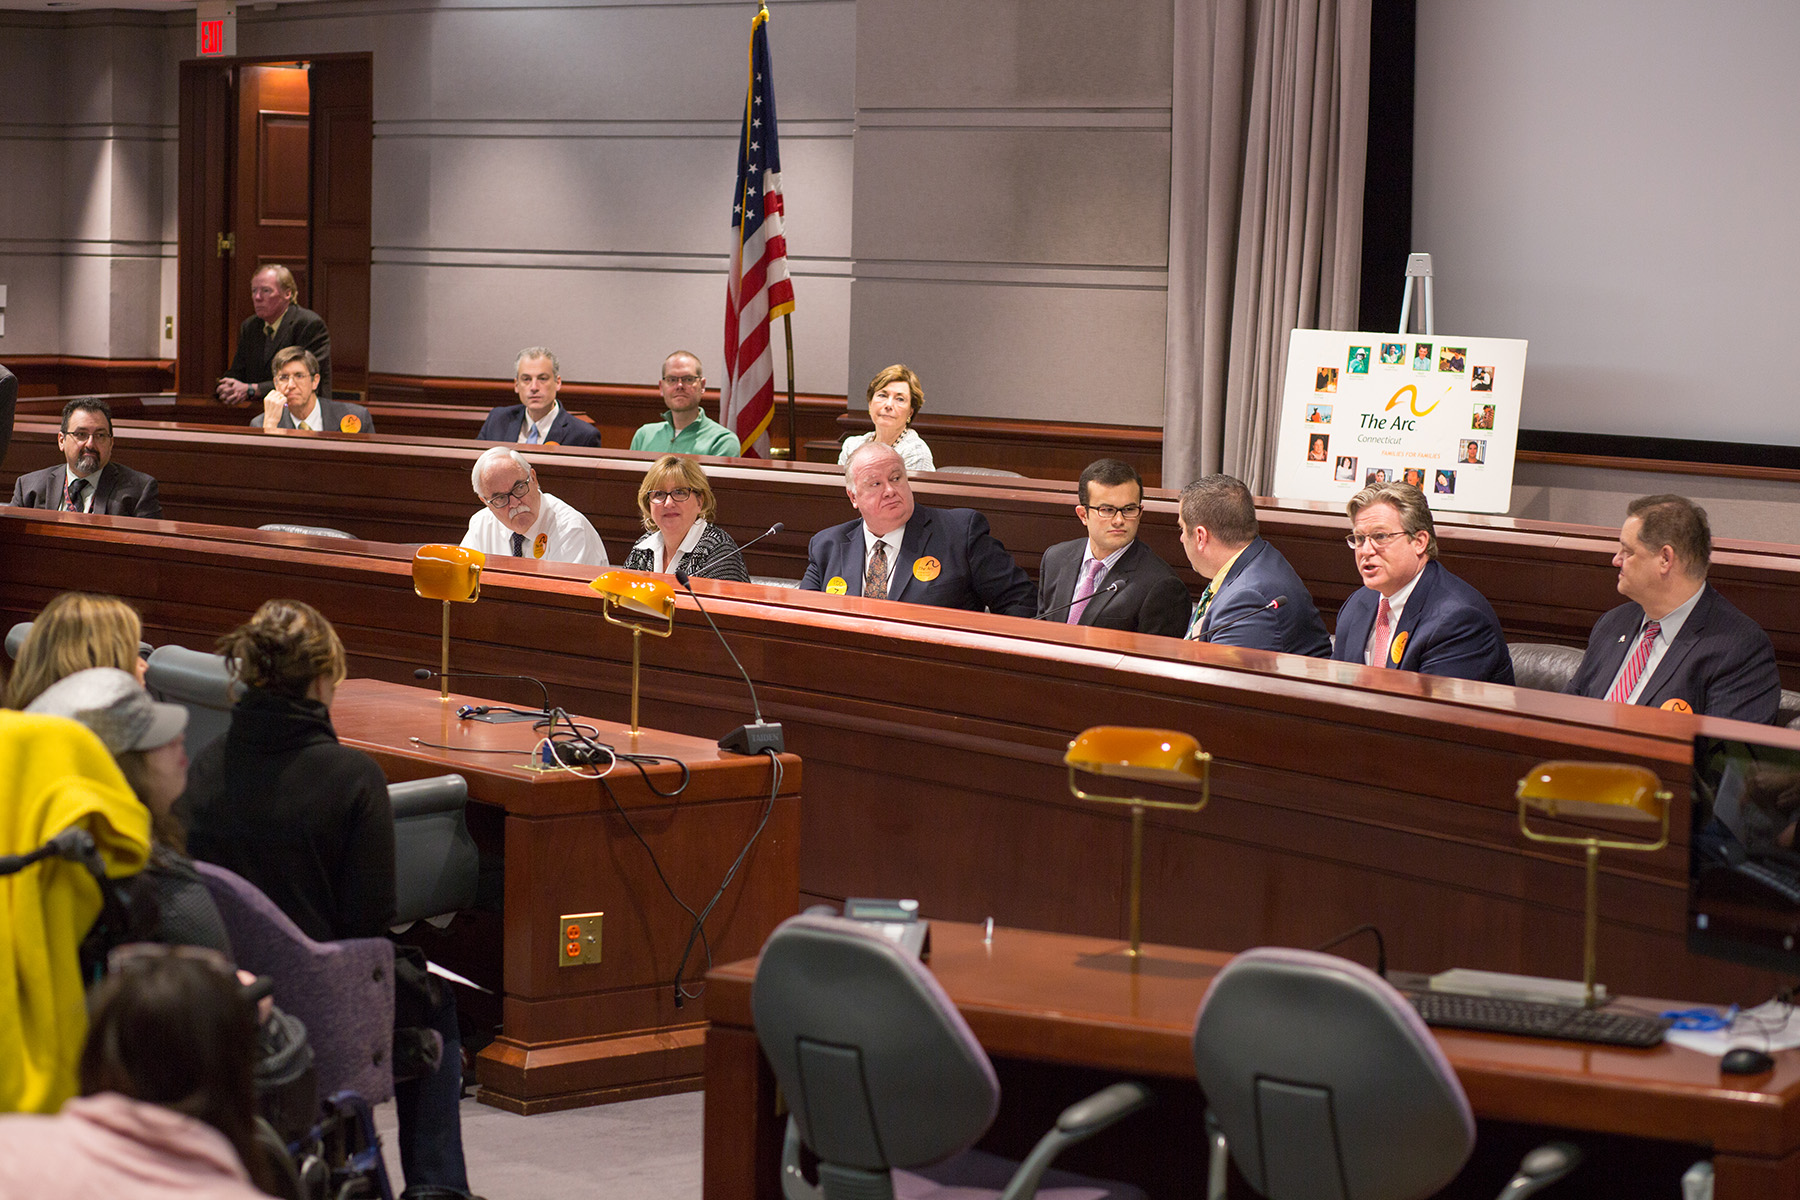 2.7.17 4th Annual Arc CT Family Hearing Day-1.JPG